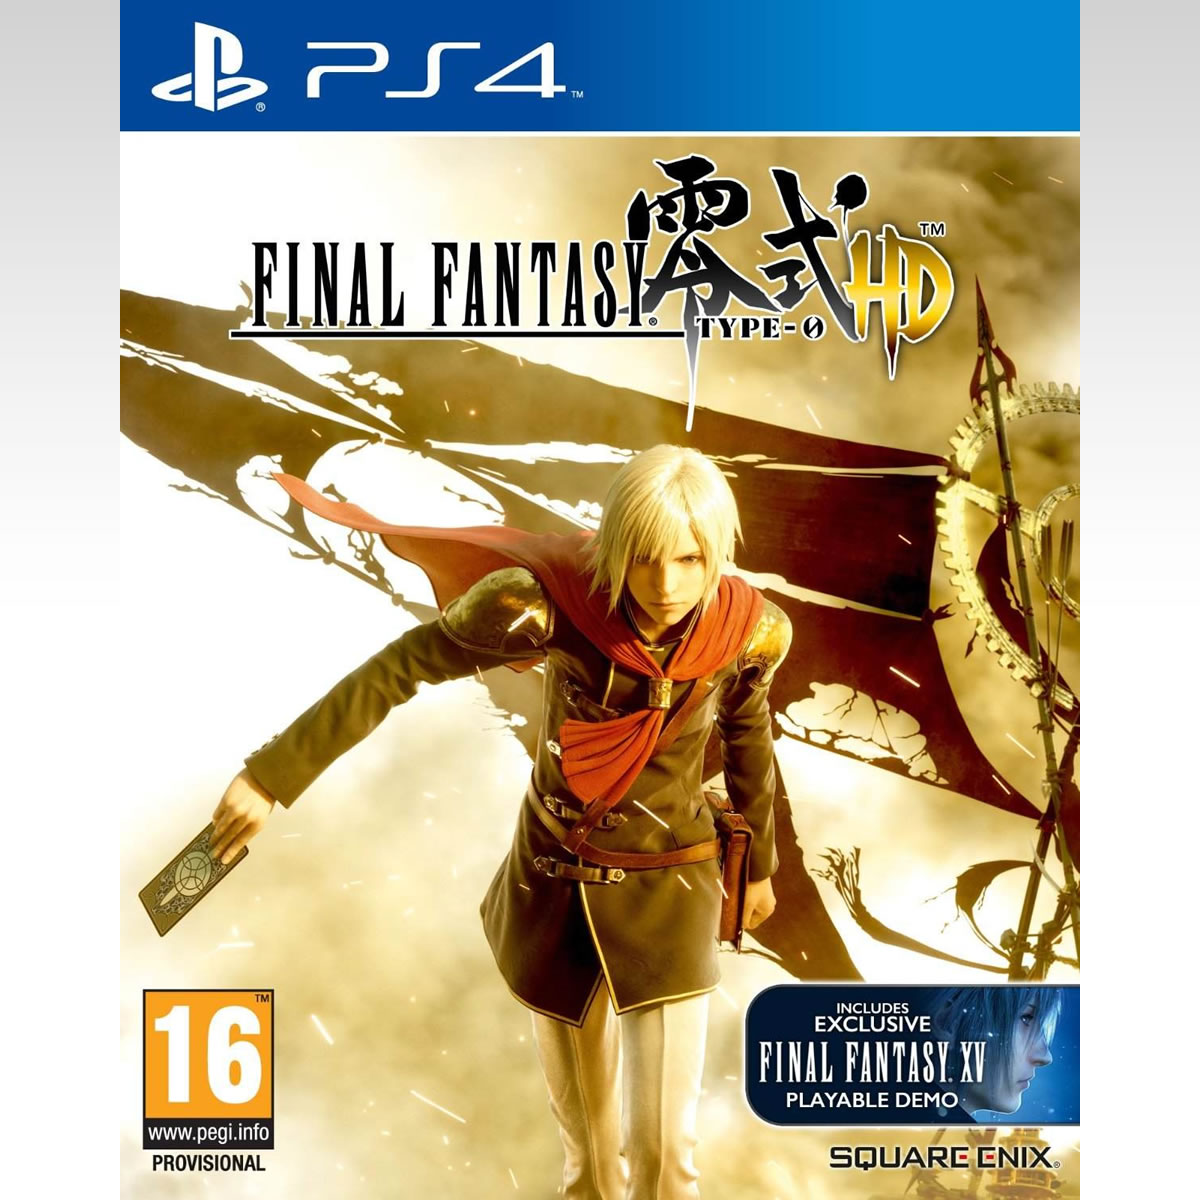 FINAL FANTASY TYPE 0 - HD (PS4)